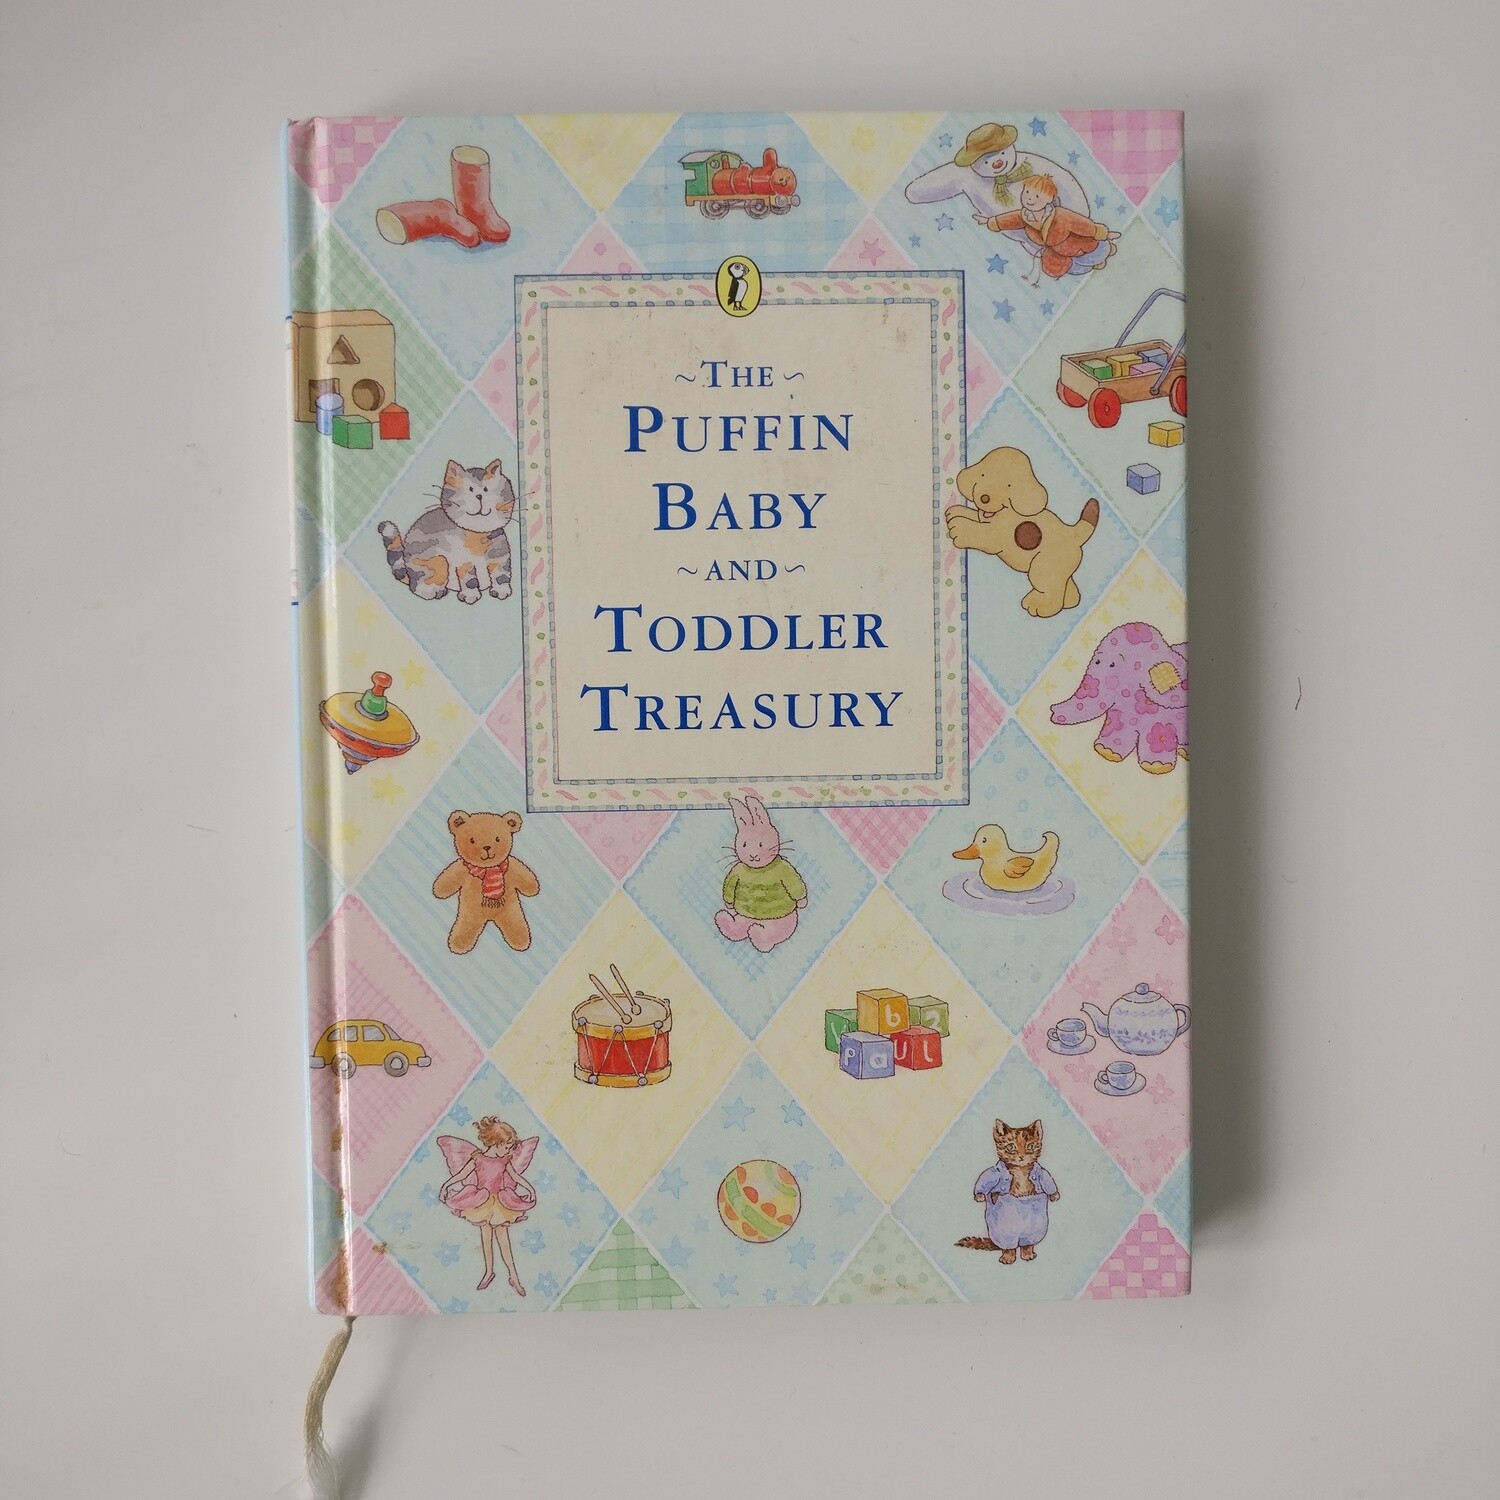 The Puffin Baby and Toddler Treasury Notebook